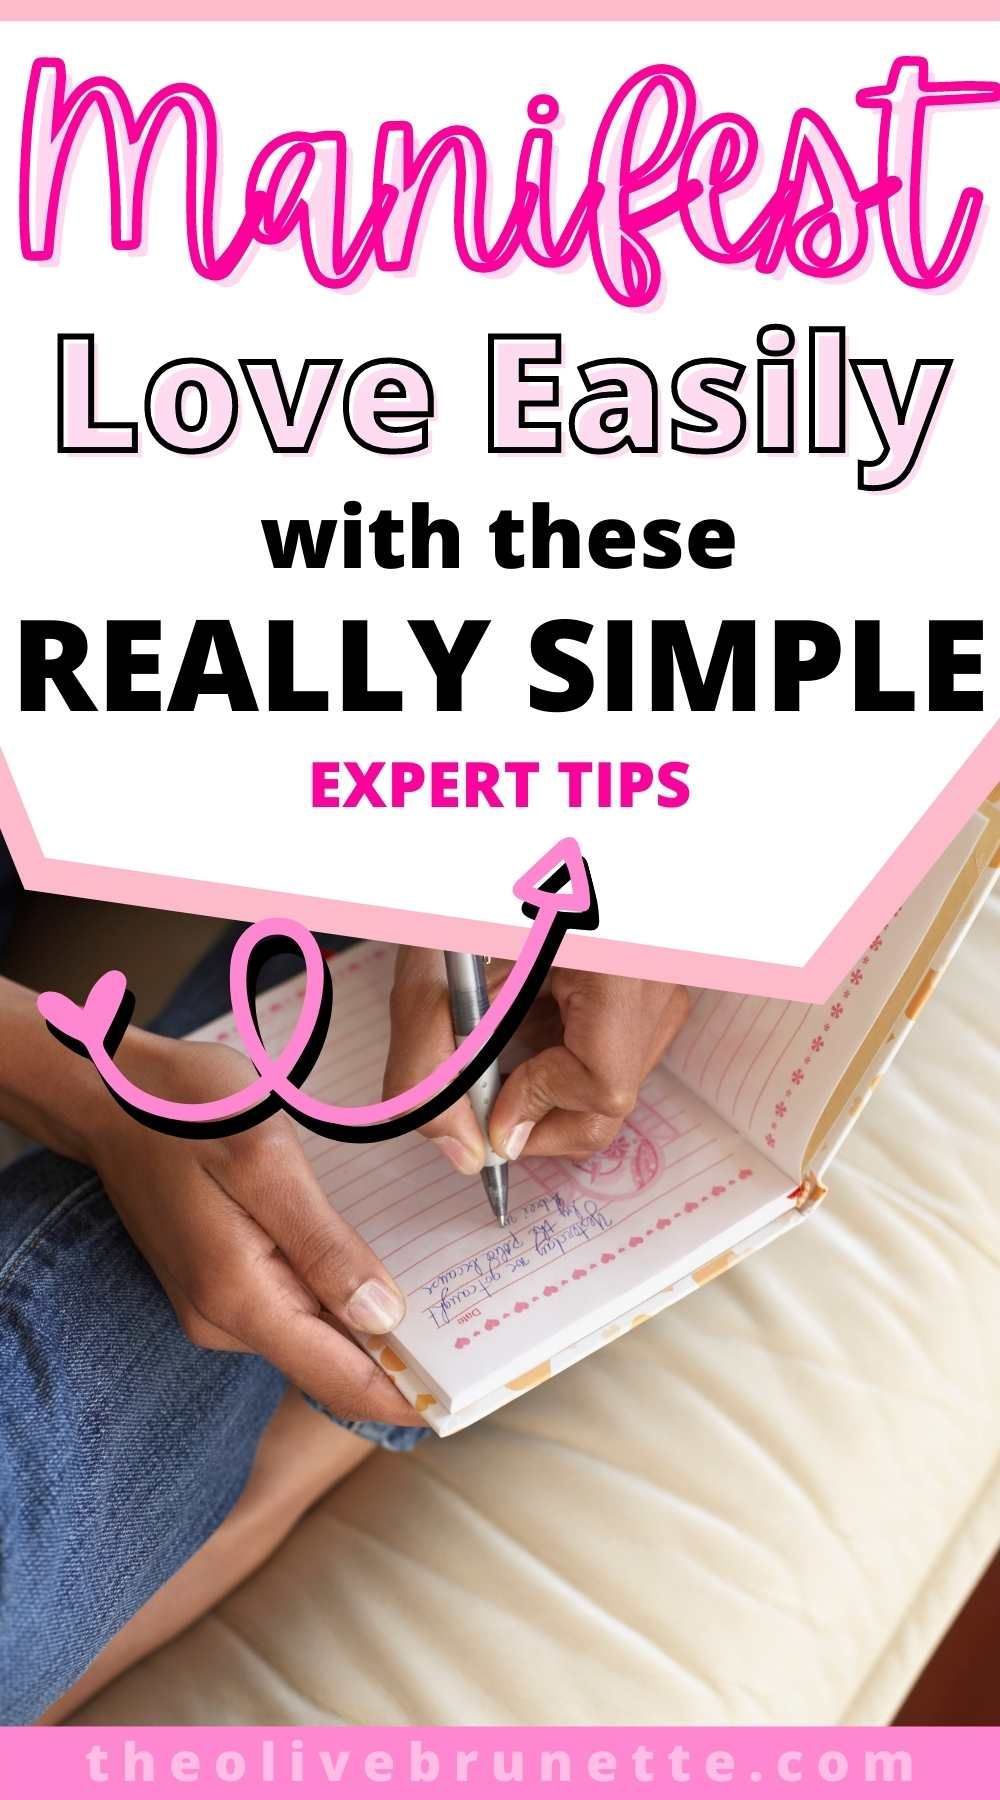 how to manifest love easily-min